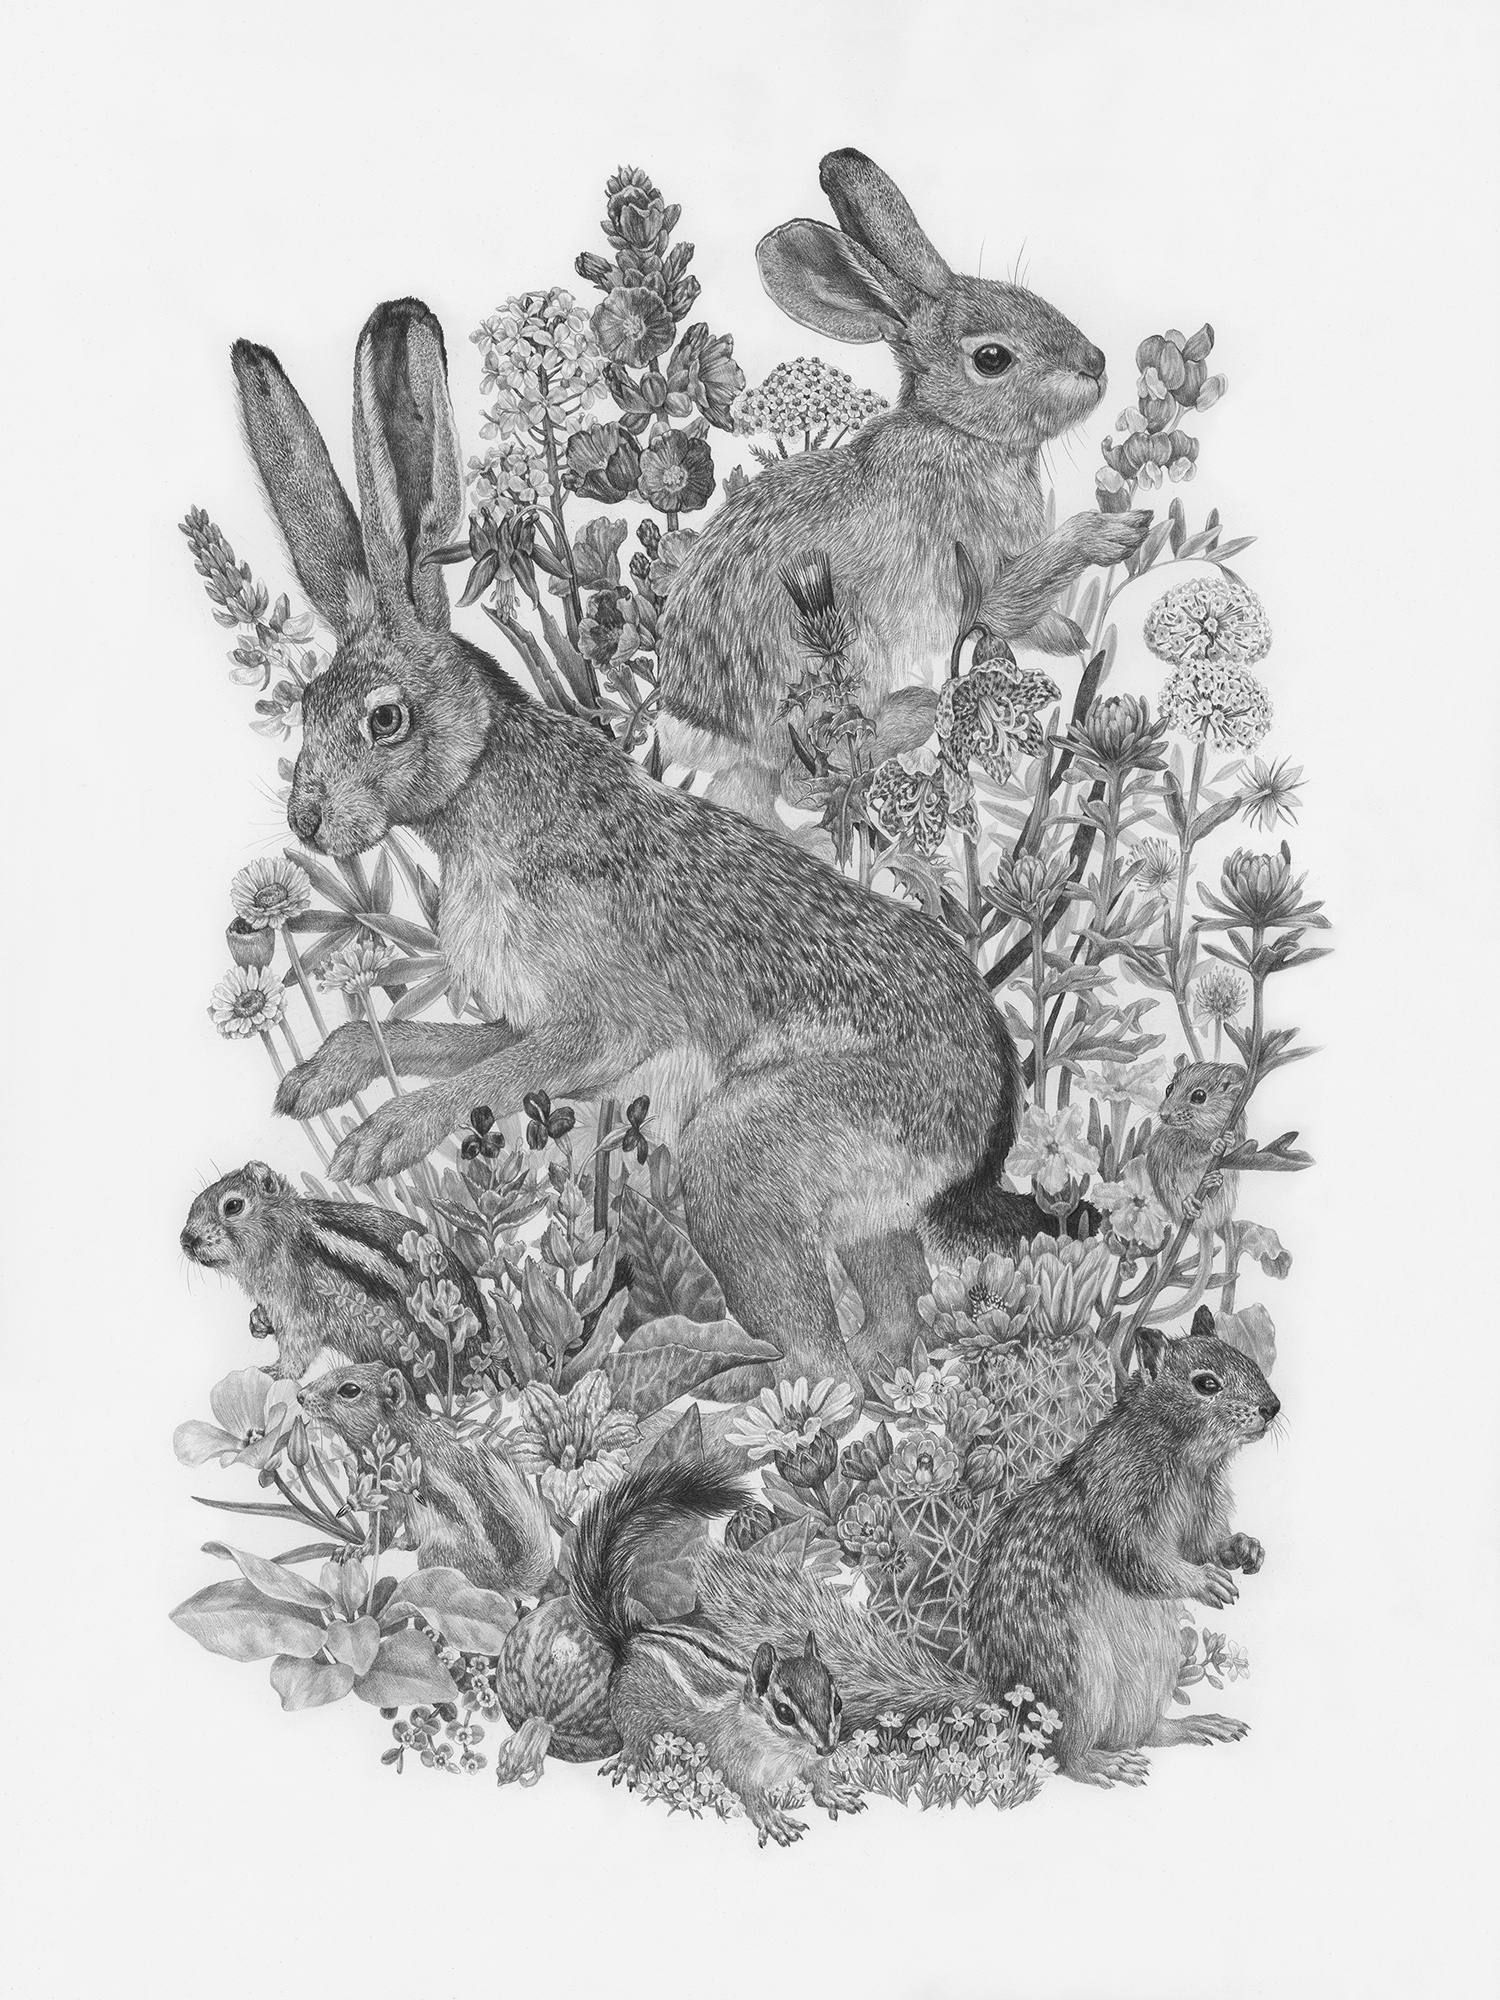 "Common Small Mammals and Wildflowers of Zion National Park, 18"" x 24"", Graphite on paper, 2019  Sold  SPECIES DEPICTED  Black Tailed Jackrabbit, Canyon Mouse, Cliff Chipmunk, Desert Cottontail, Golden-mantled Ground Squirrel, Rock Squirrel, White-tailed Antelope Squirrel and twenty-three plant species."